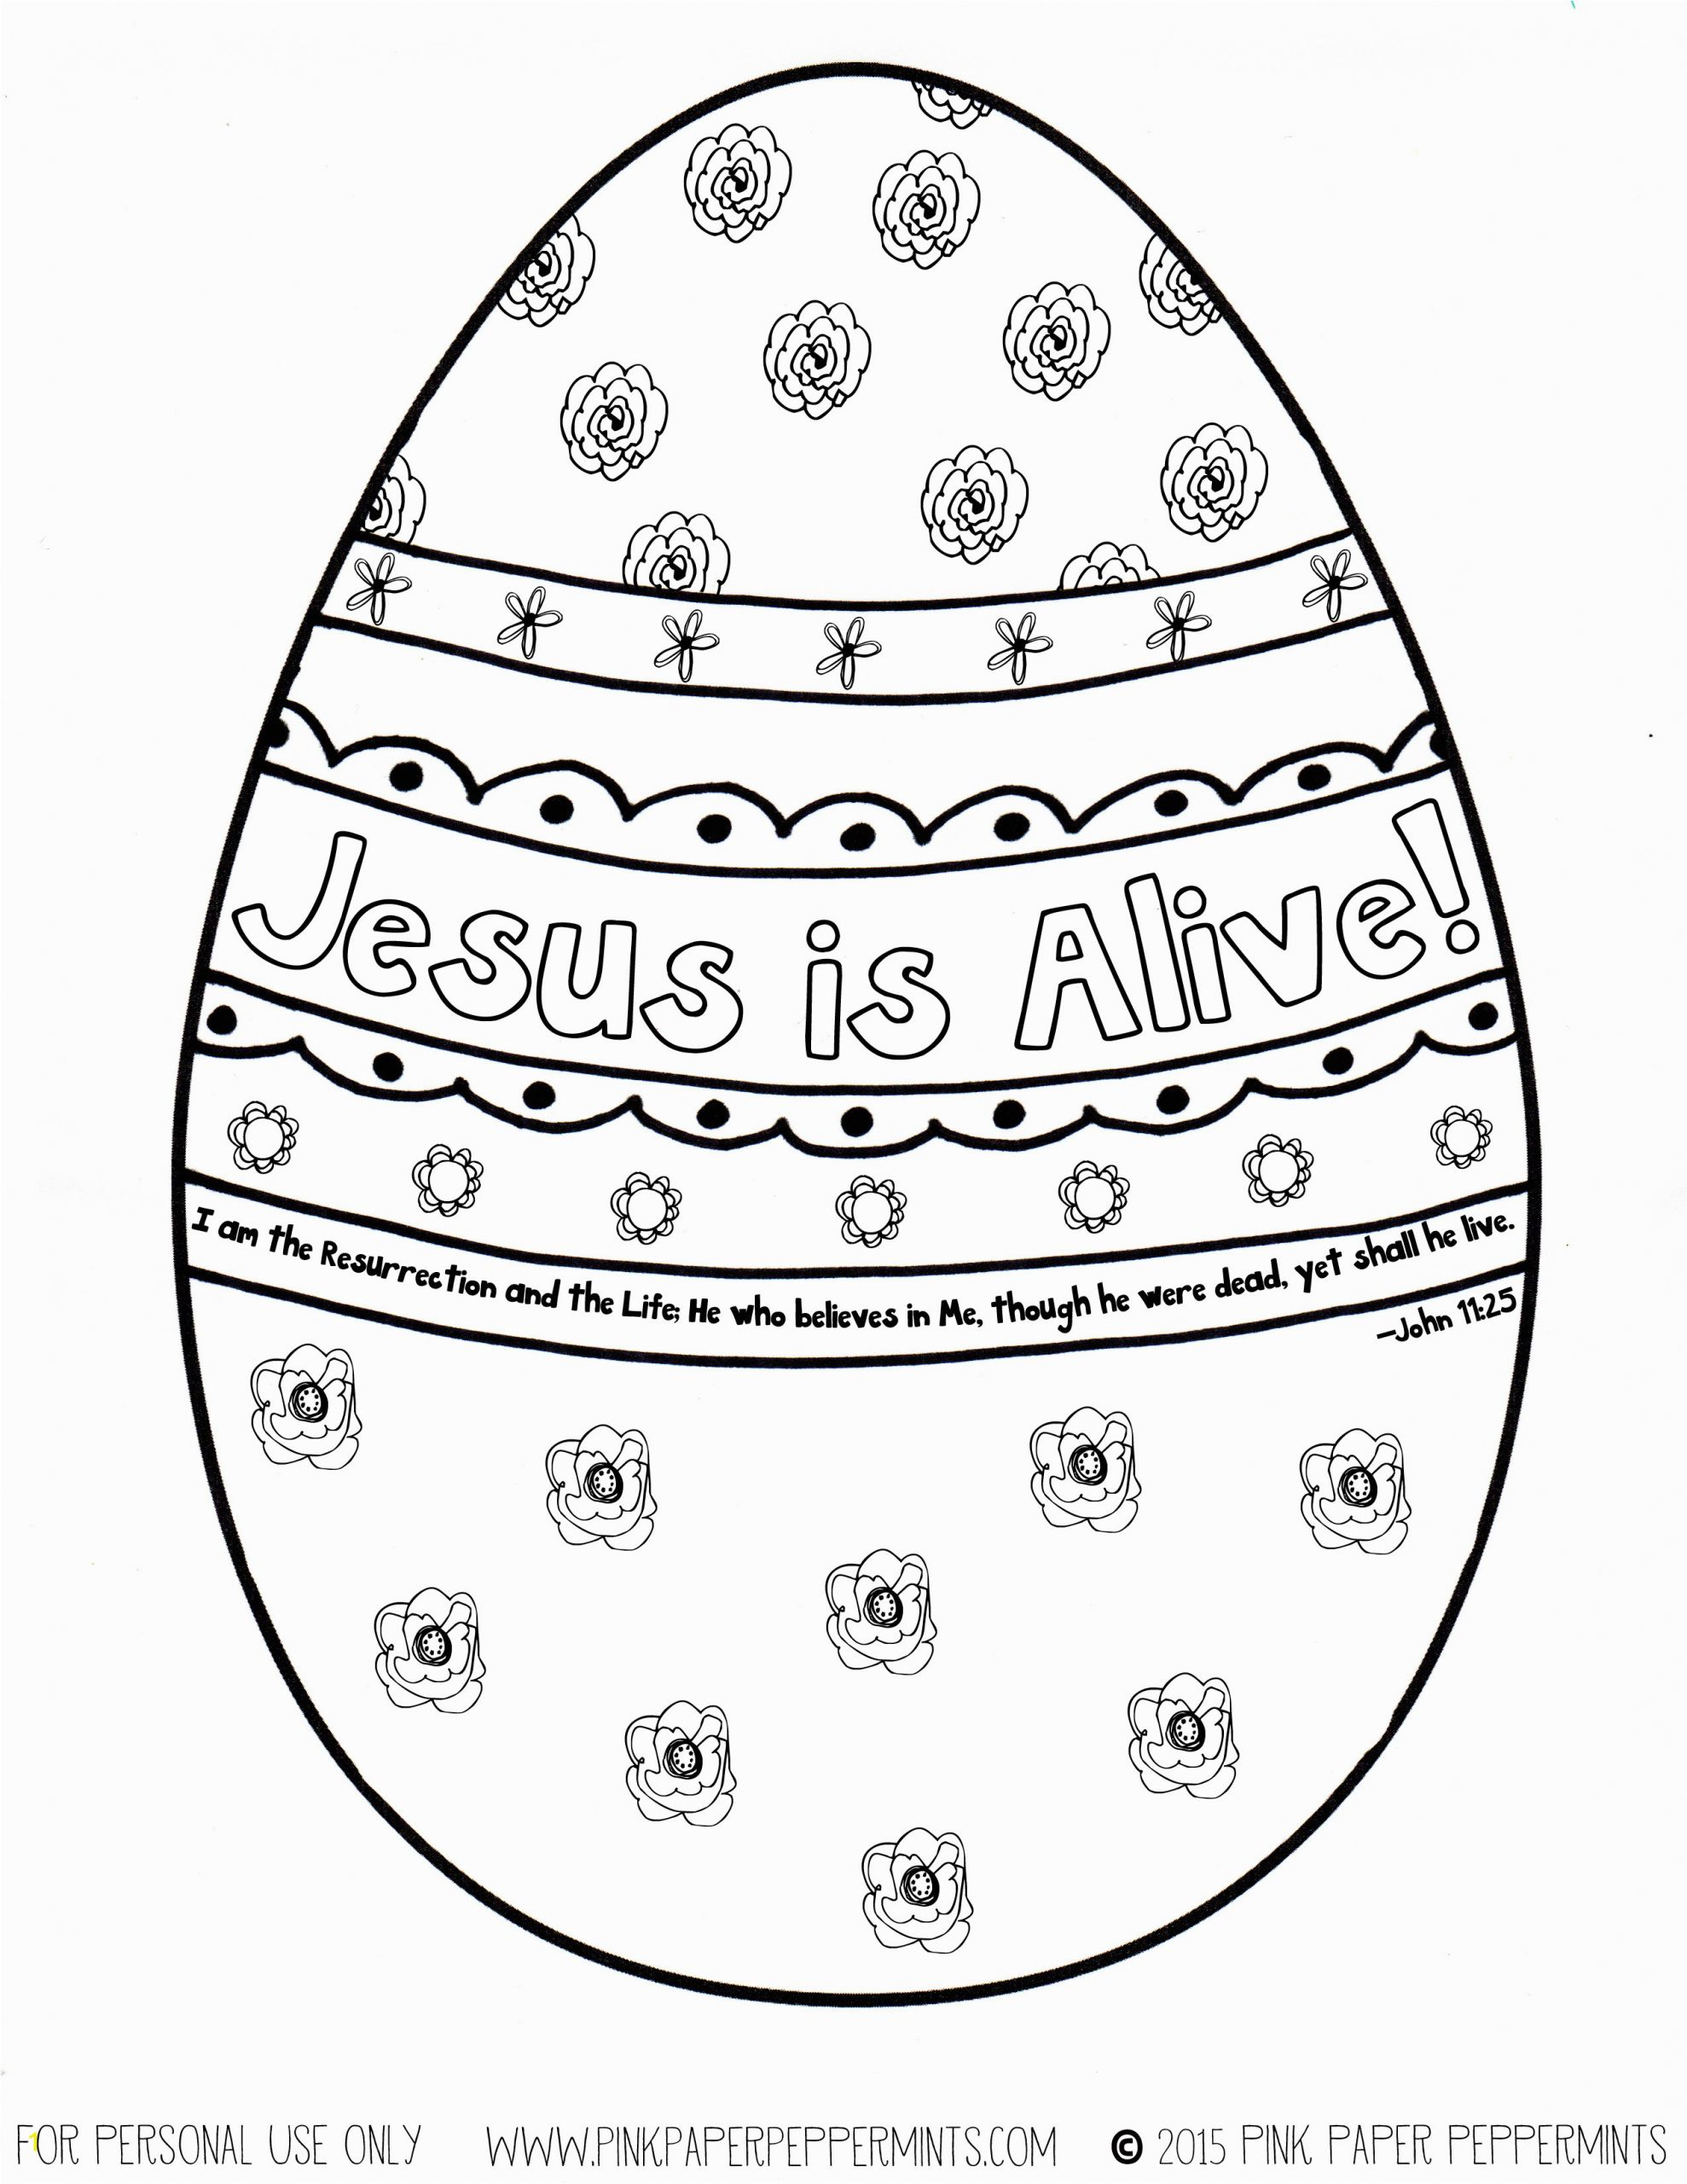 Easter Coloring Pages Jesus is Alive Quilty Mcquilterkin Pink Paper Peppermints